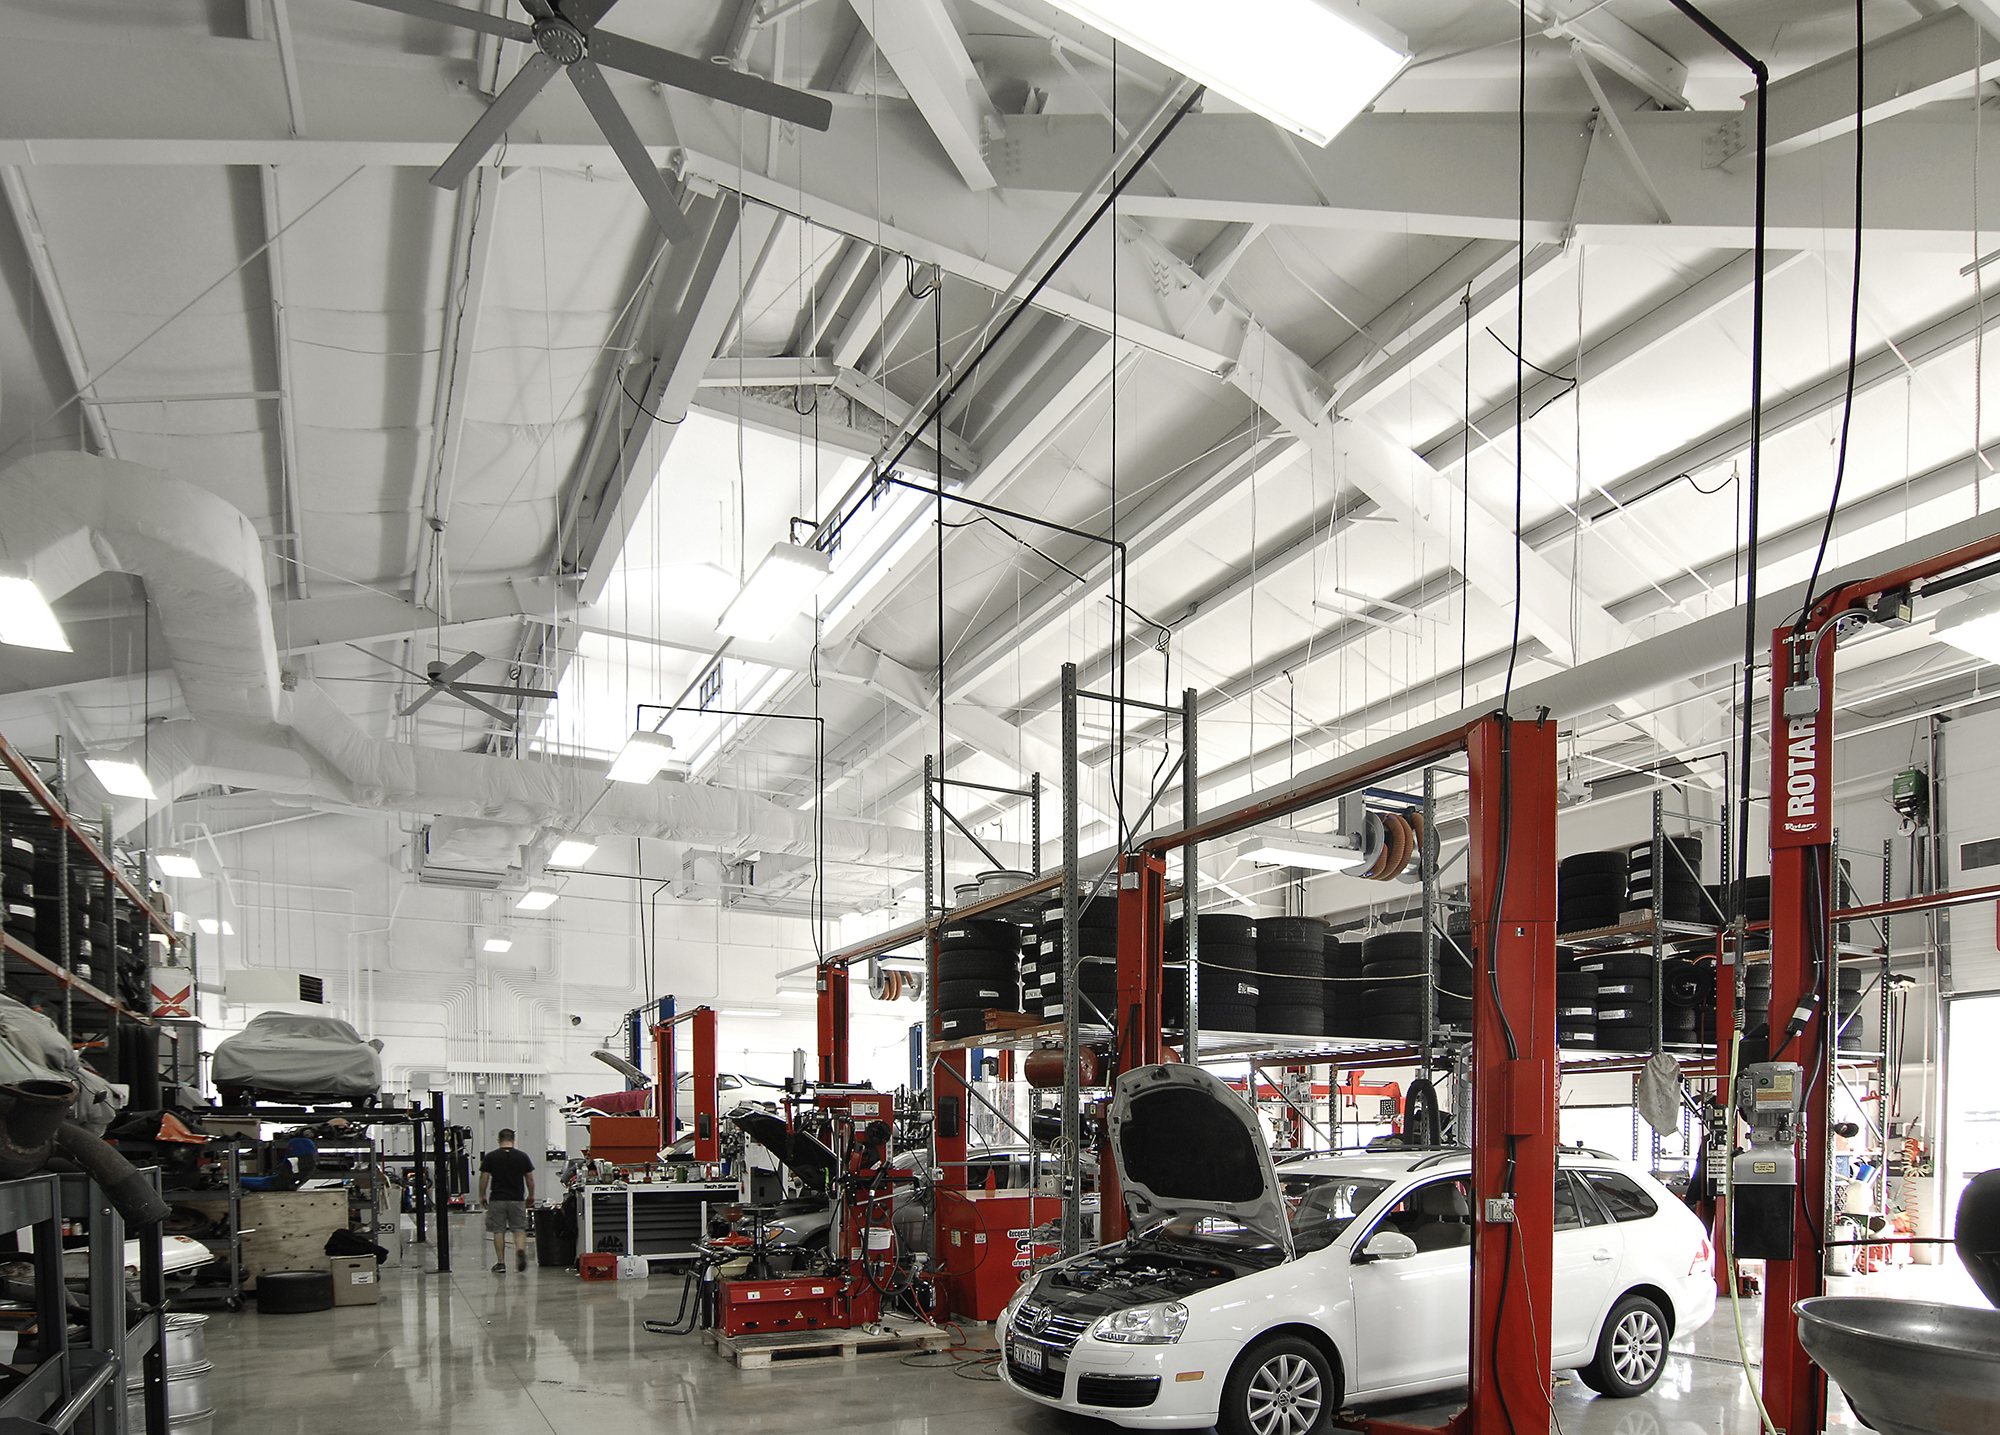 11-bay service center with open space and bright lighting